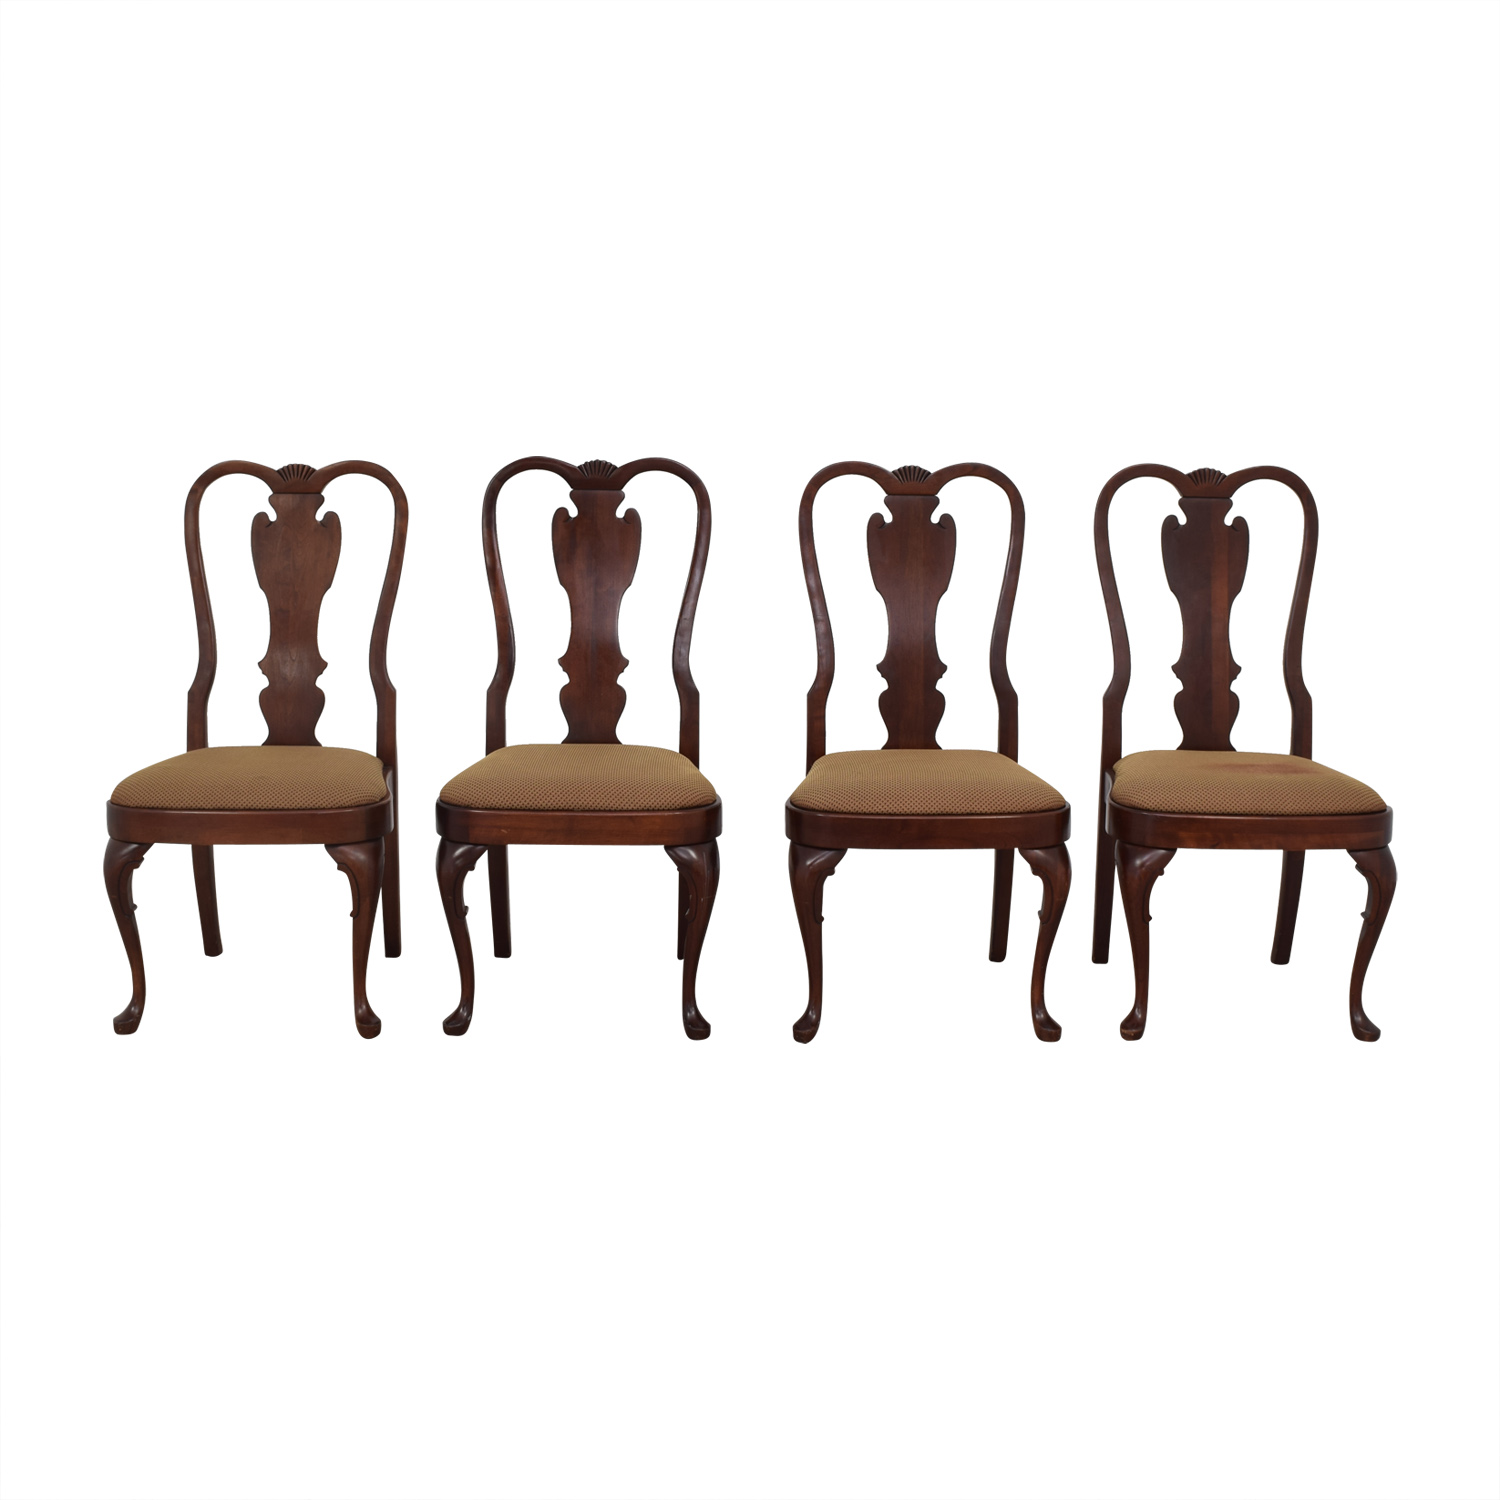 Pennsylvania House Pennsylvania House Dining Chairs price